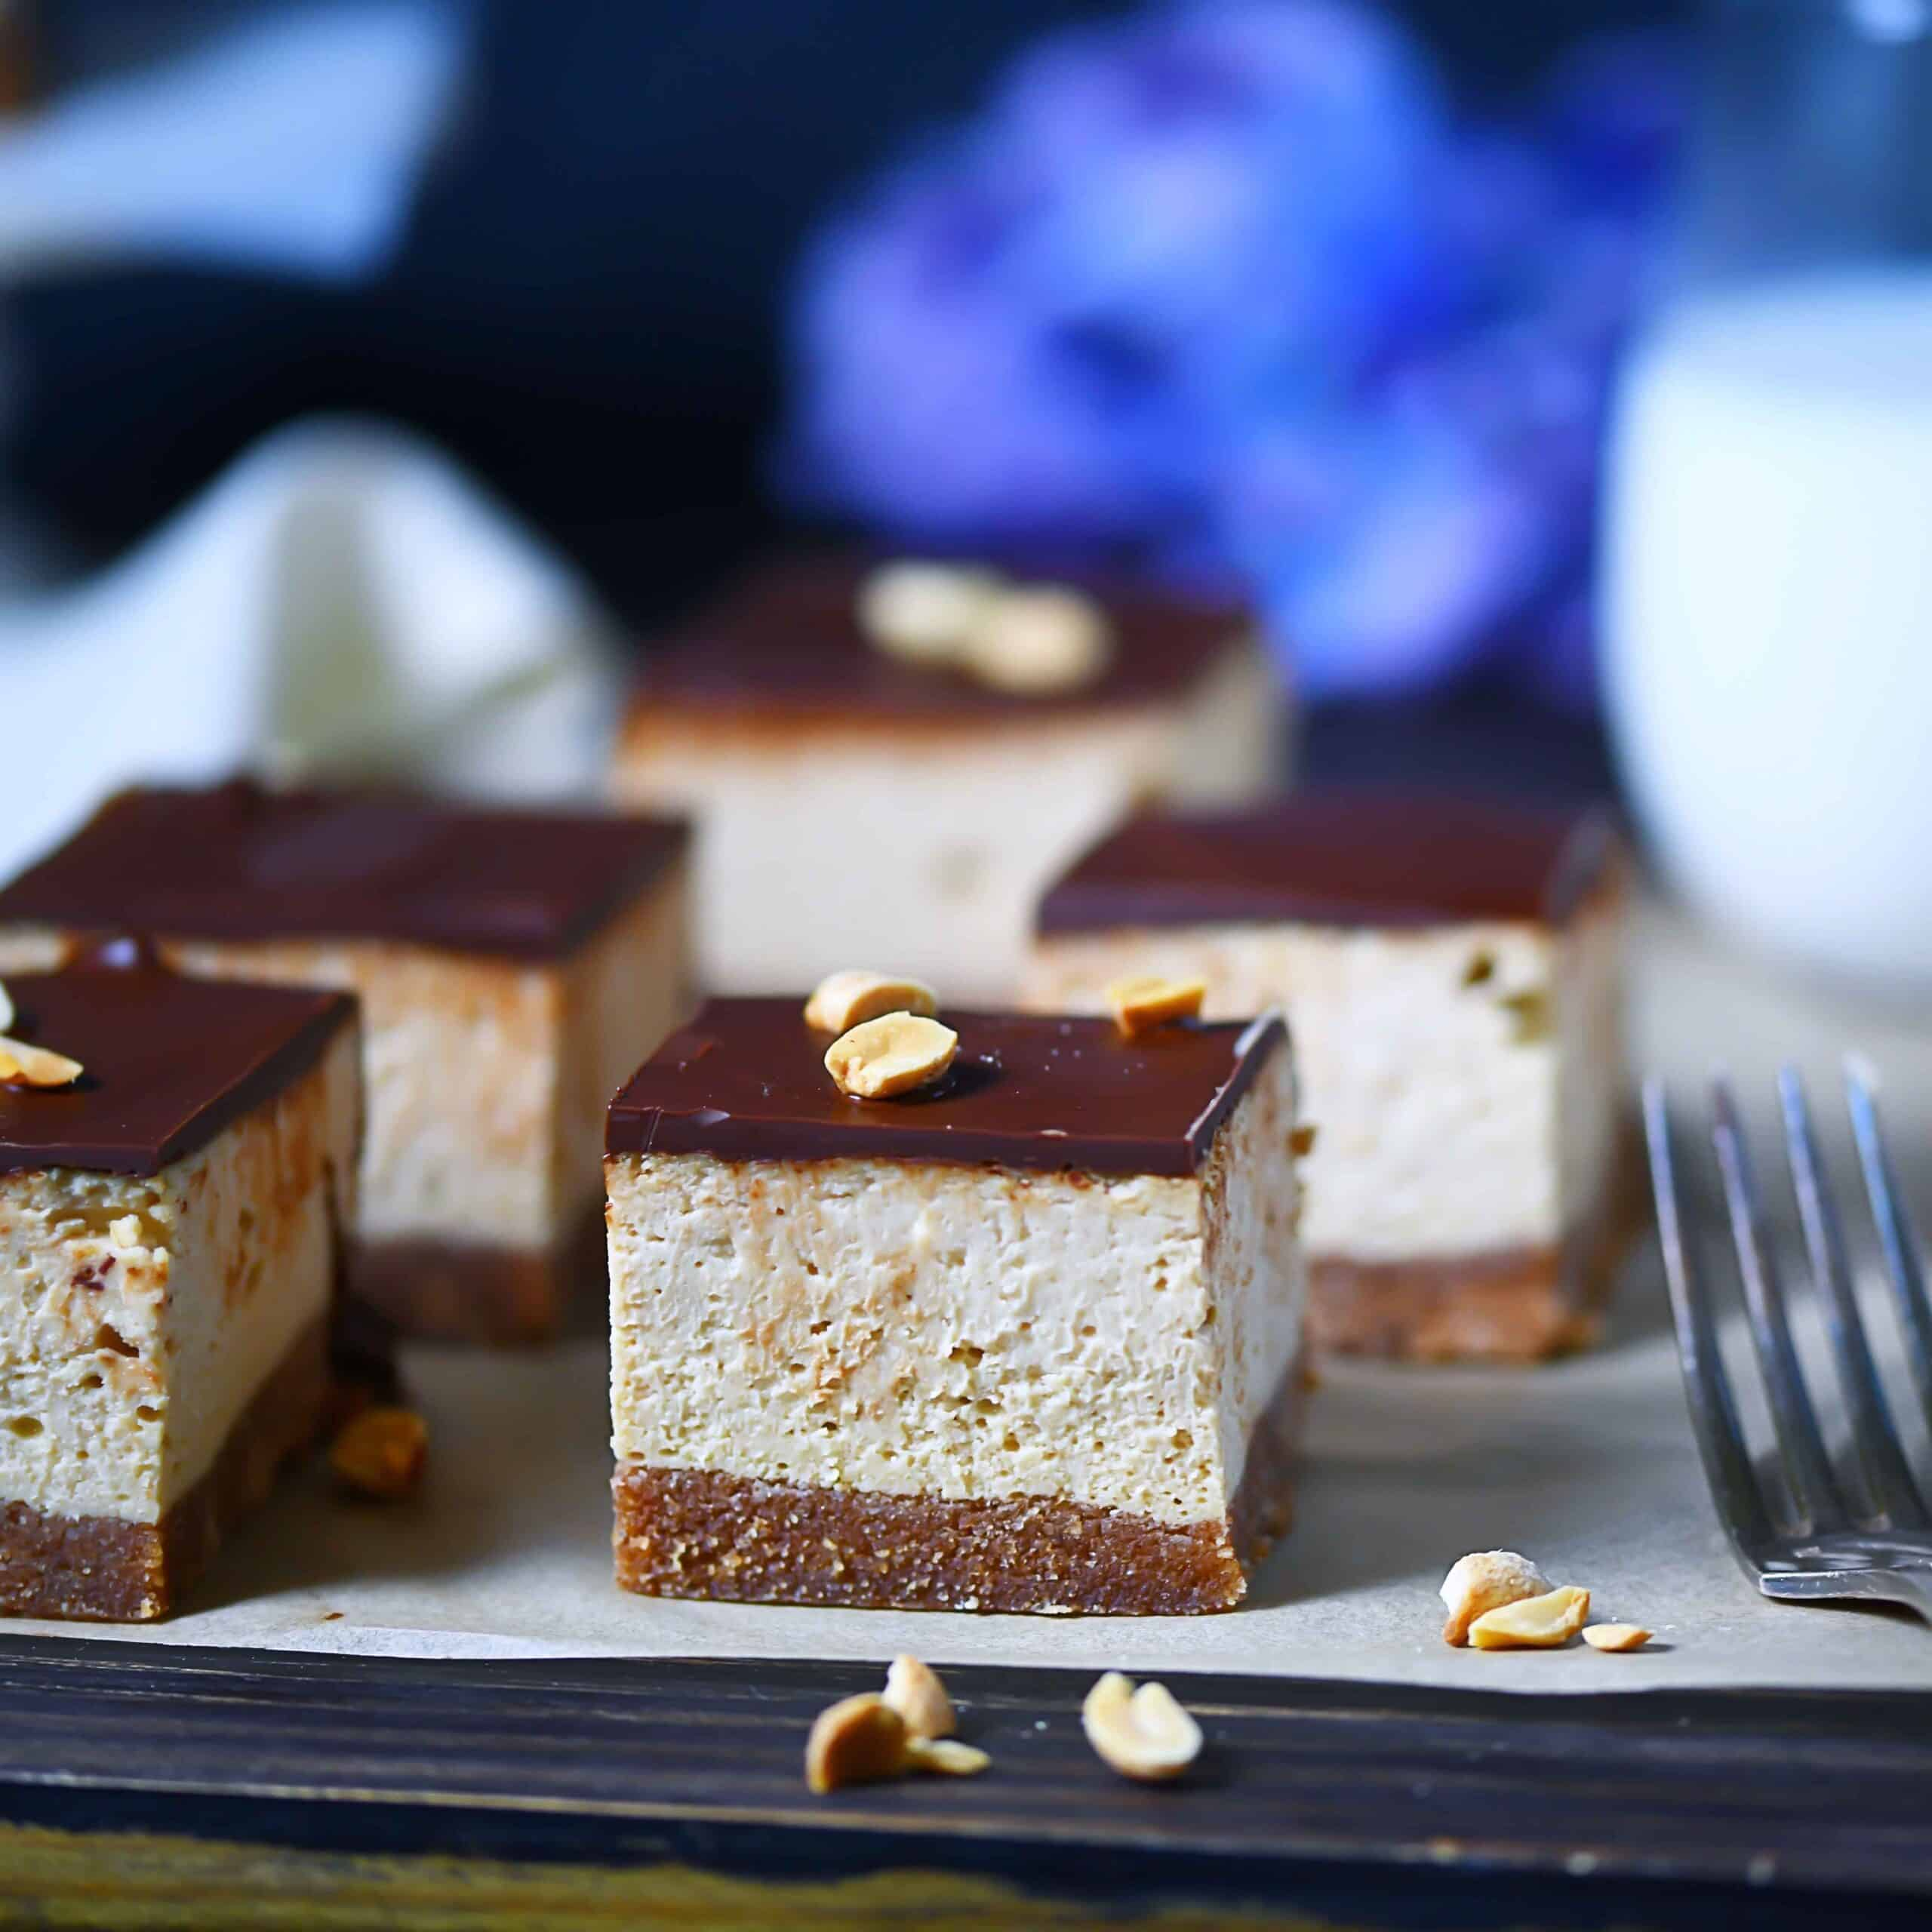 Keto Peanut Butter Cheesecake Bars with milk